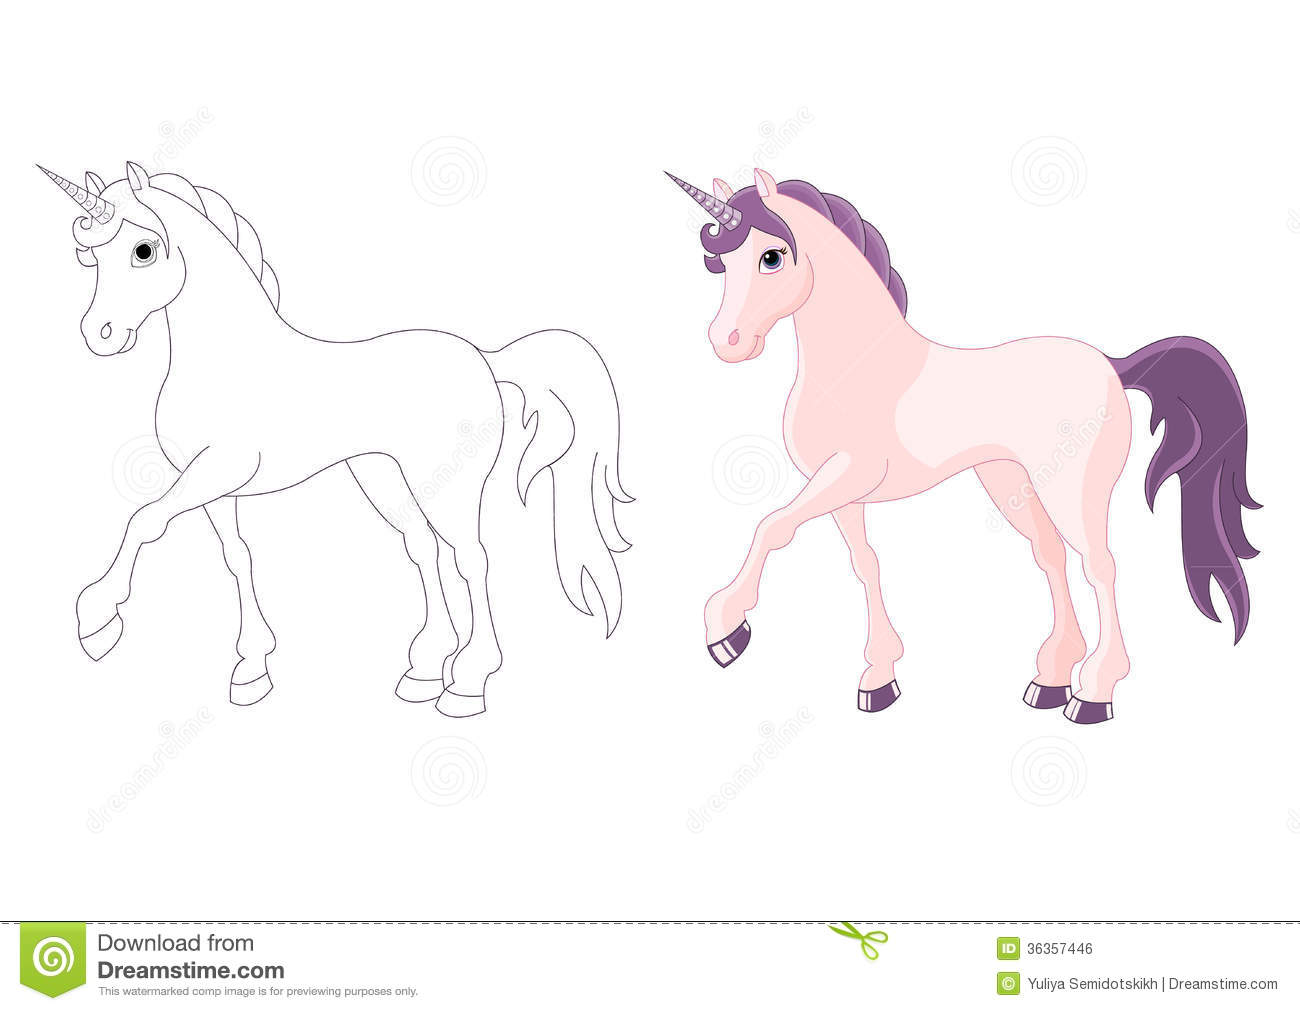 Unicorn princess coloring pages - Unicorn With Princess Coloring Pages Unicorn Coloring Page Princess And Unicorn